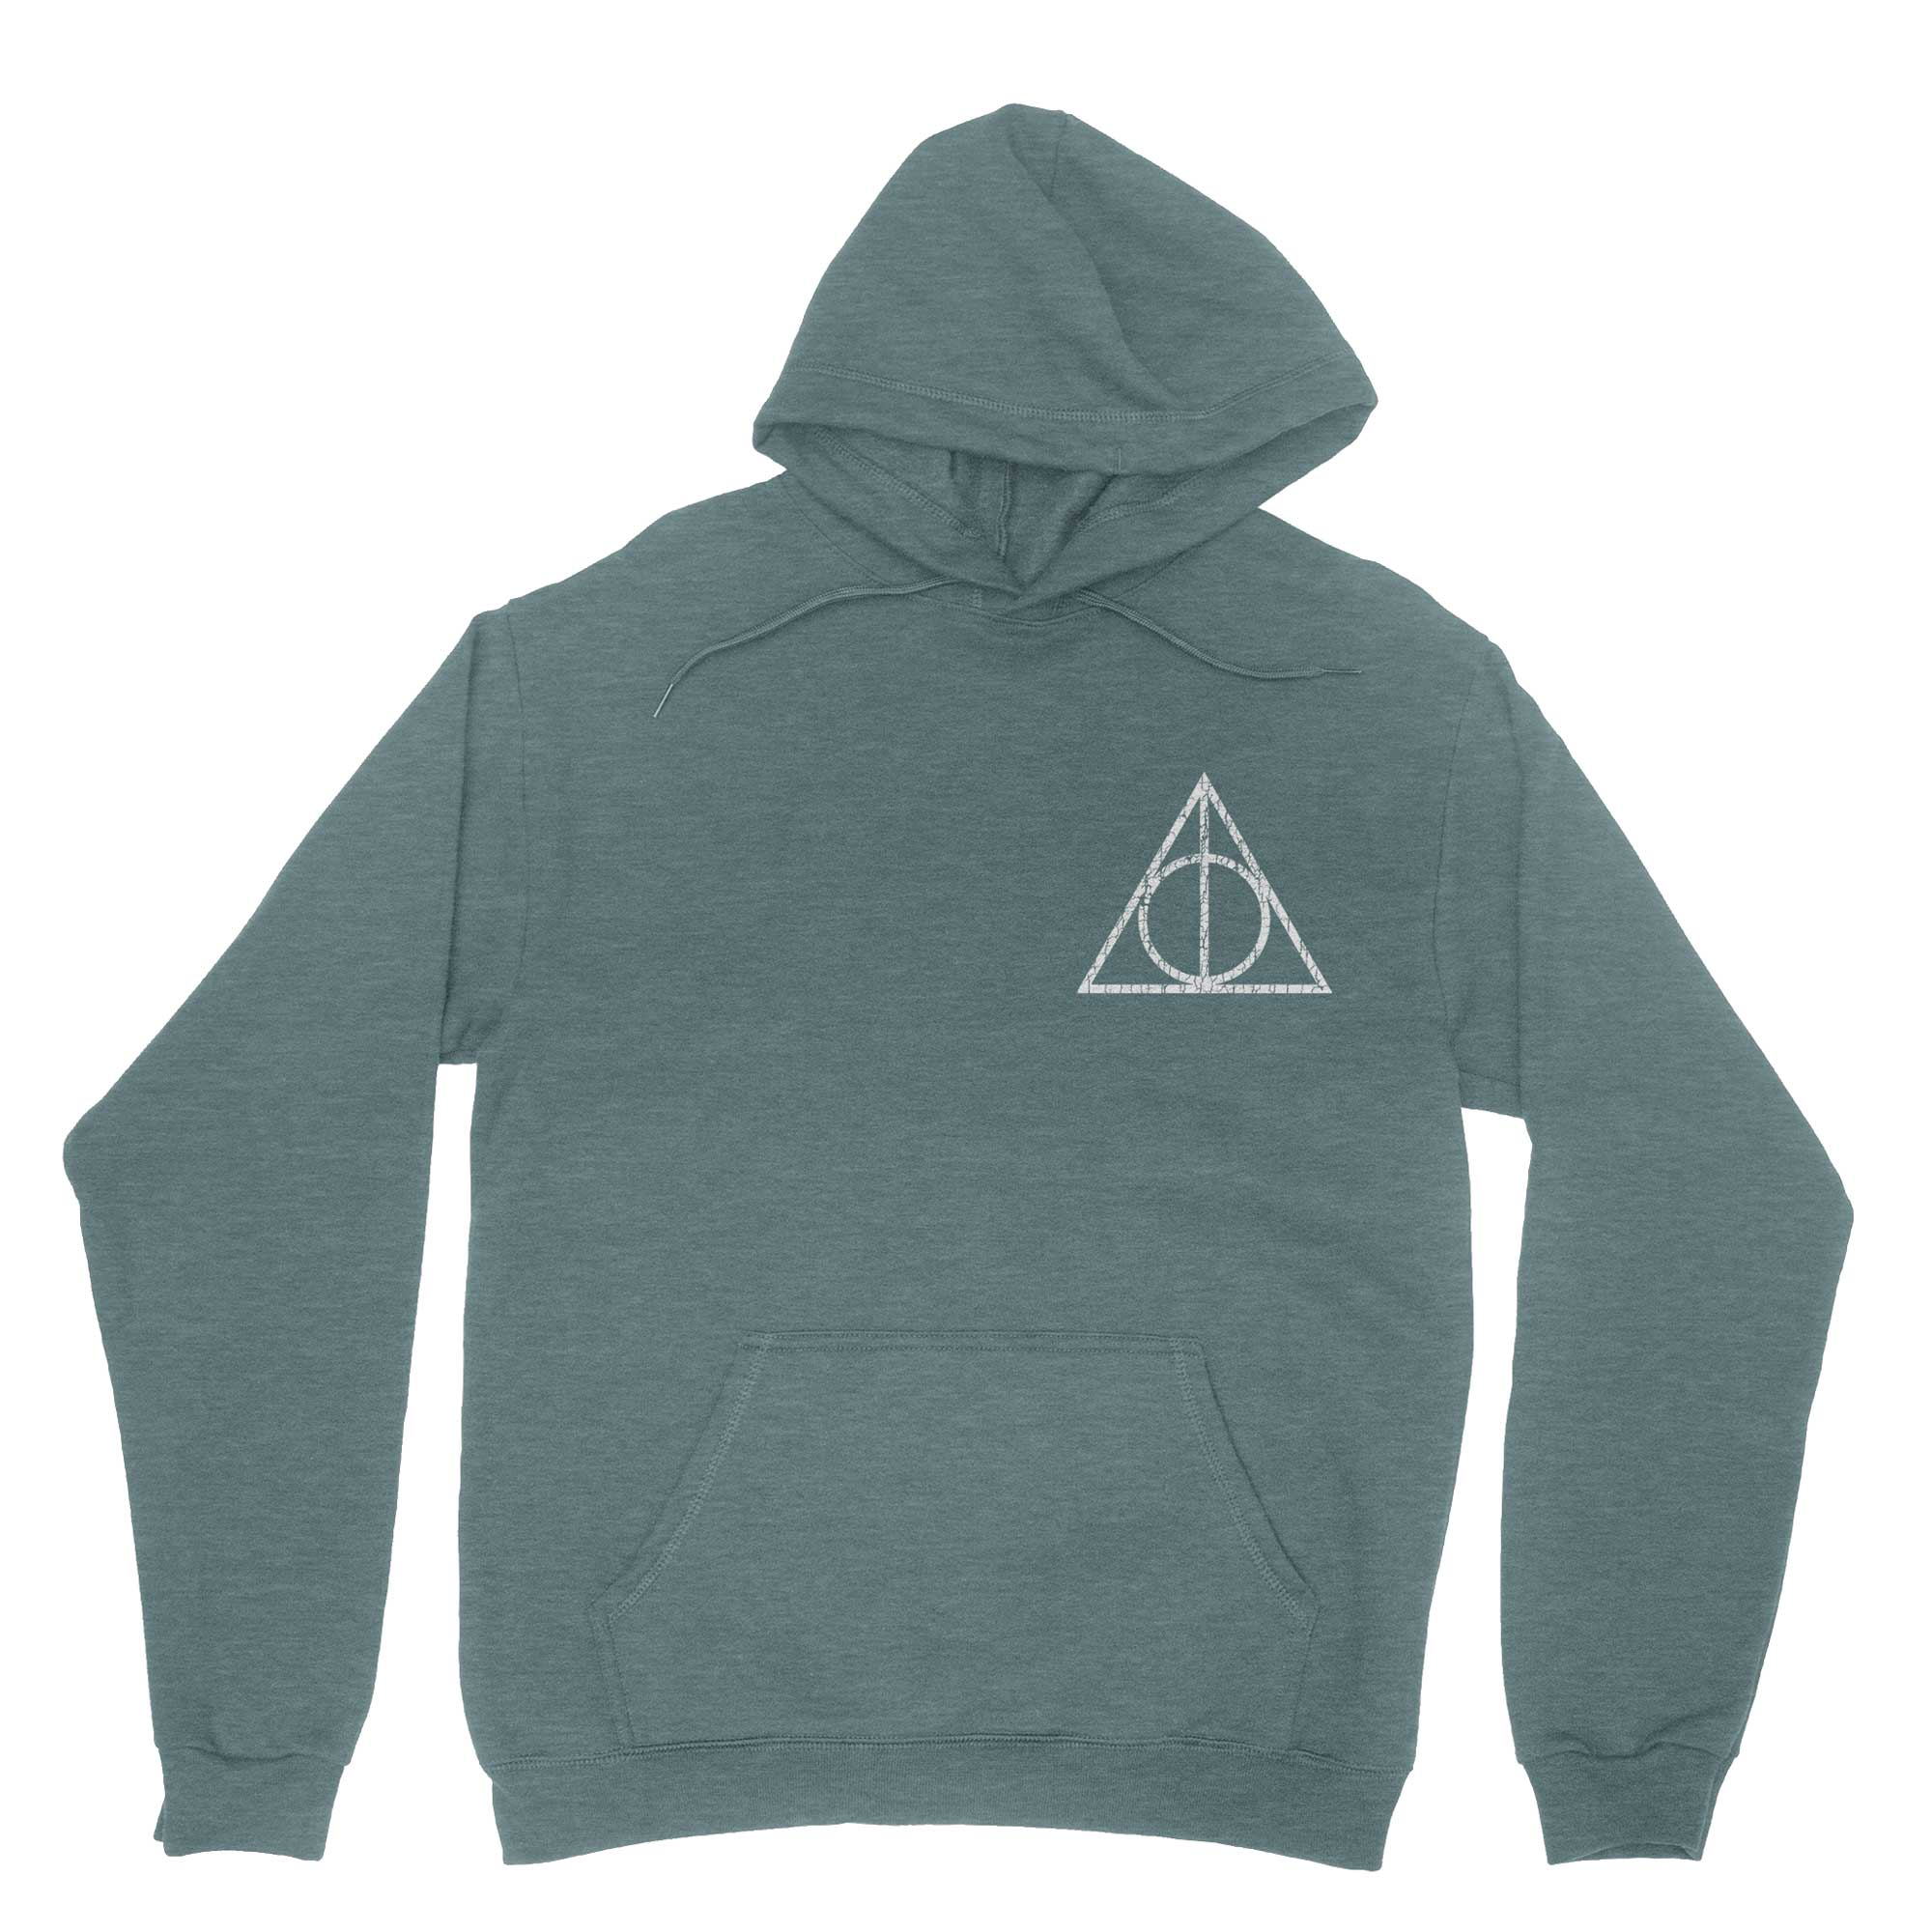 Hollowed Symbol Vintage Hoodie Sweatshirt-Hoodies-Shirtasaurus-S-Heather Green-Shirtasaurus